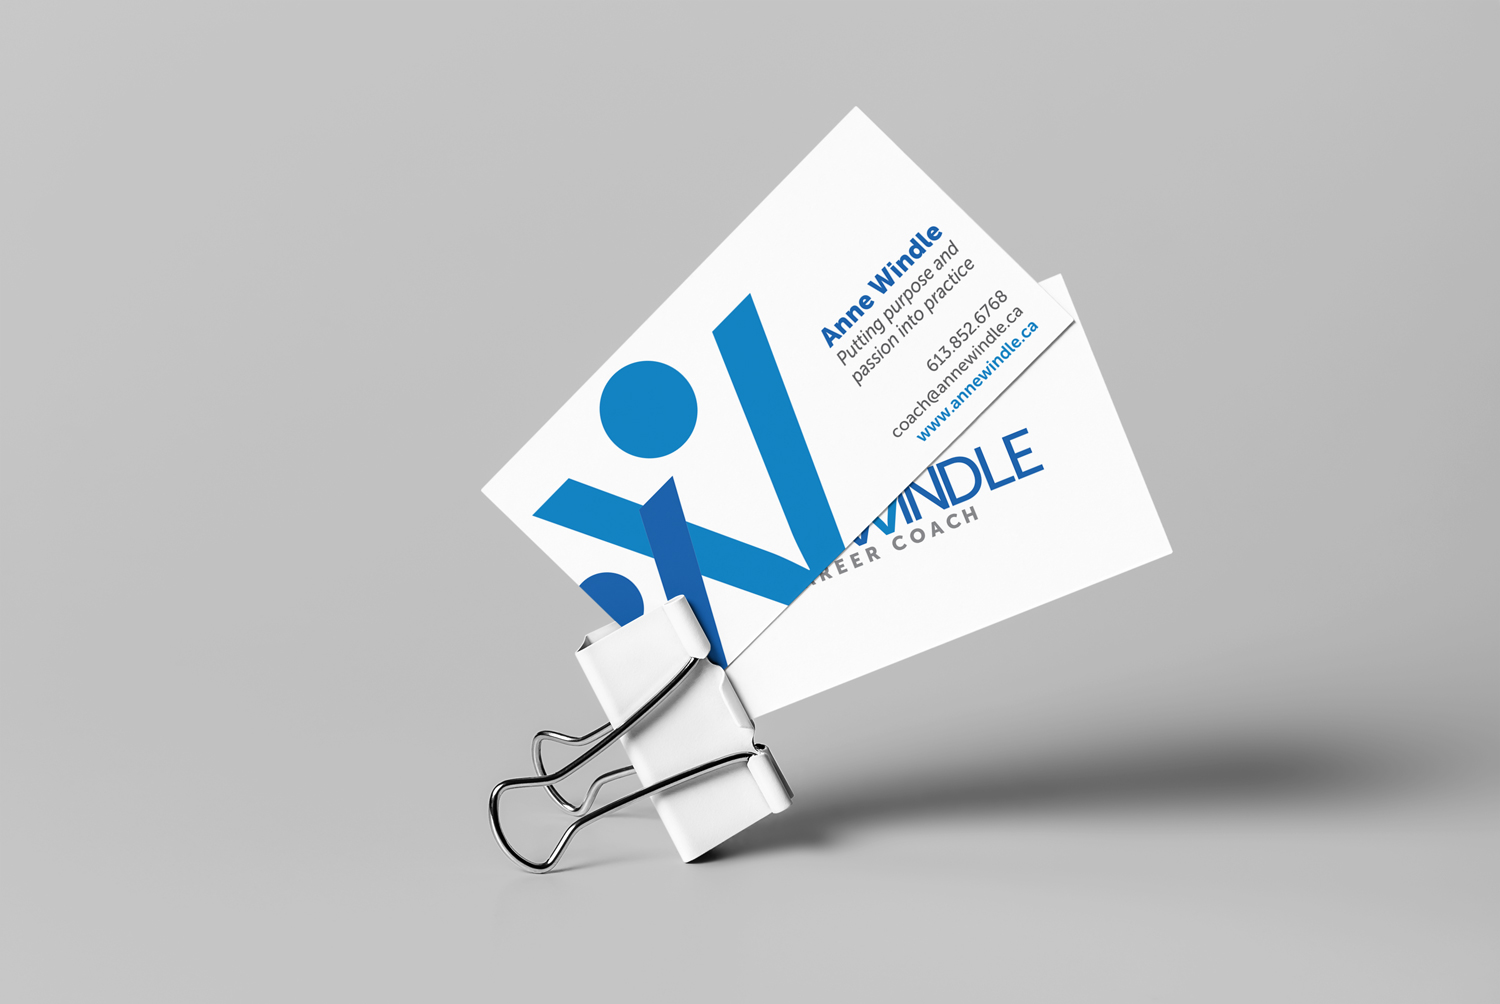 Anne-Windle-Career-Coach-Business-Card-Designer.jpg